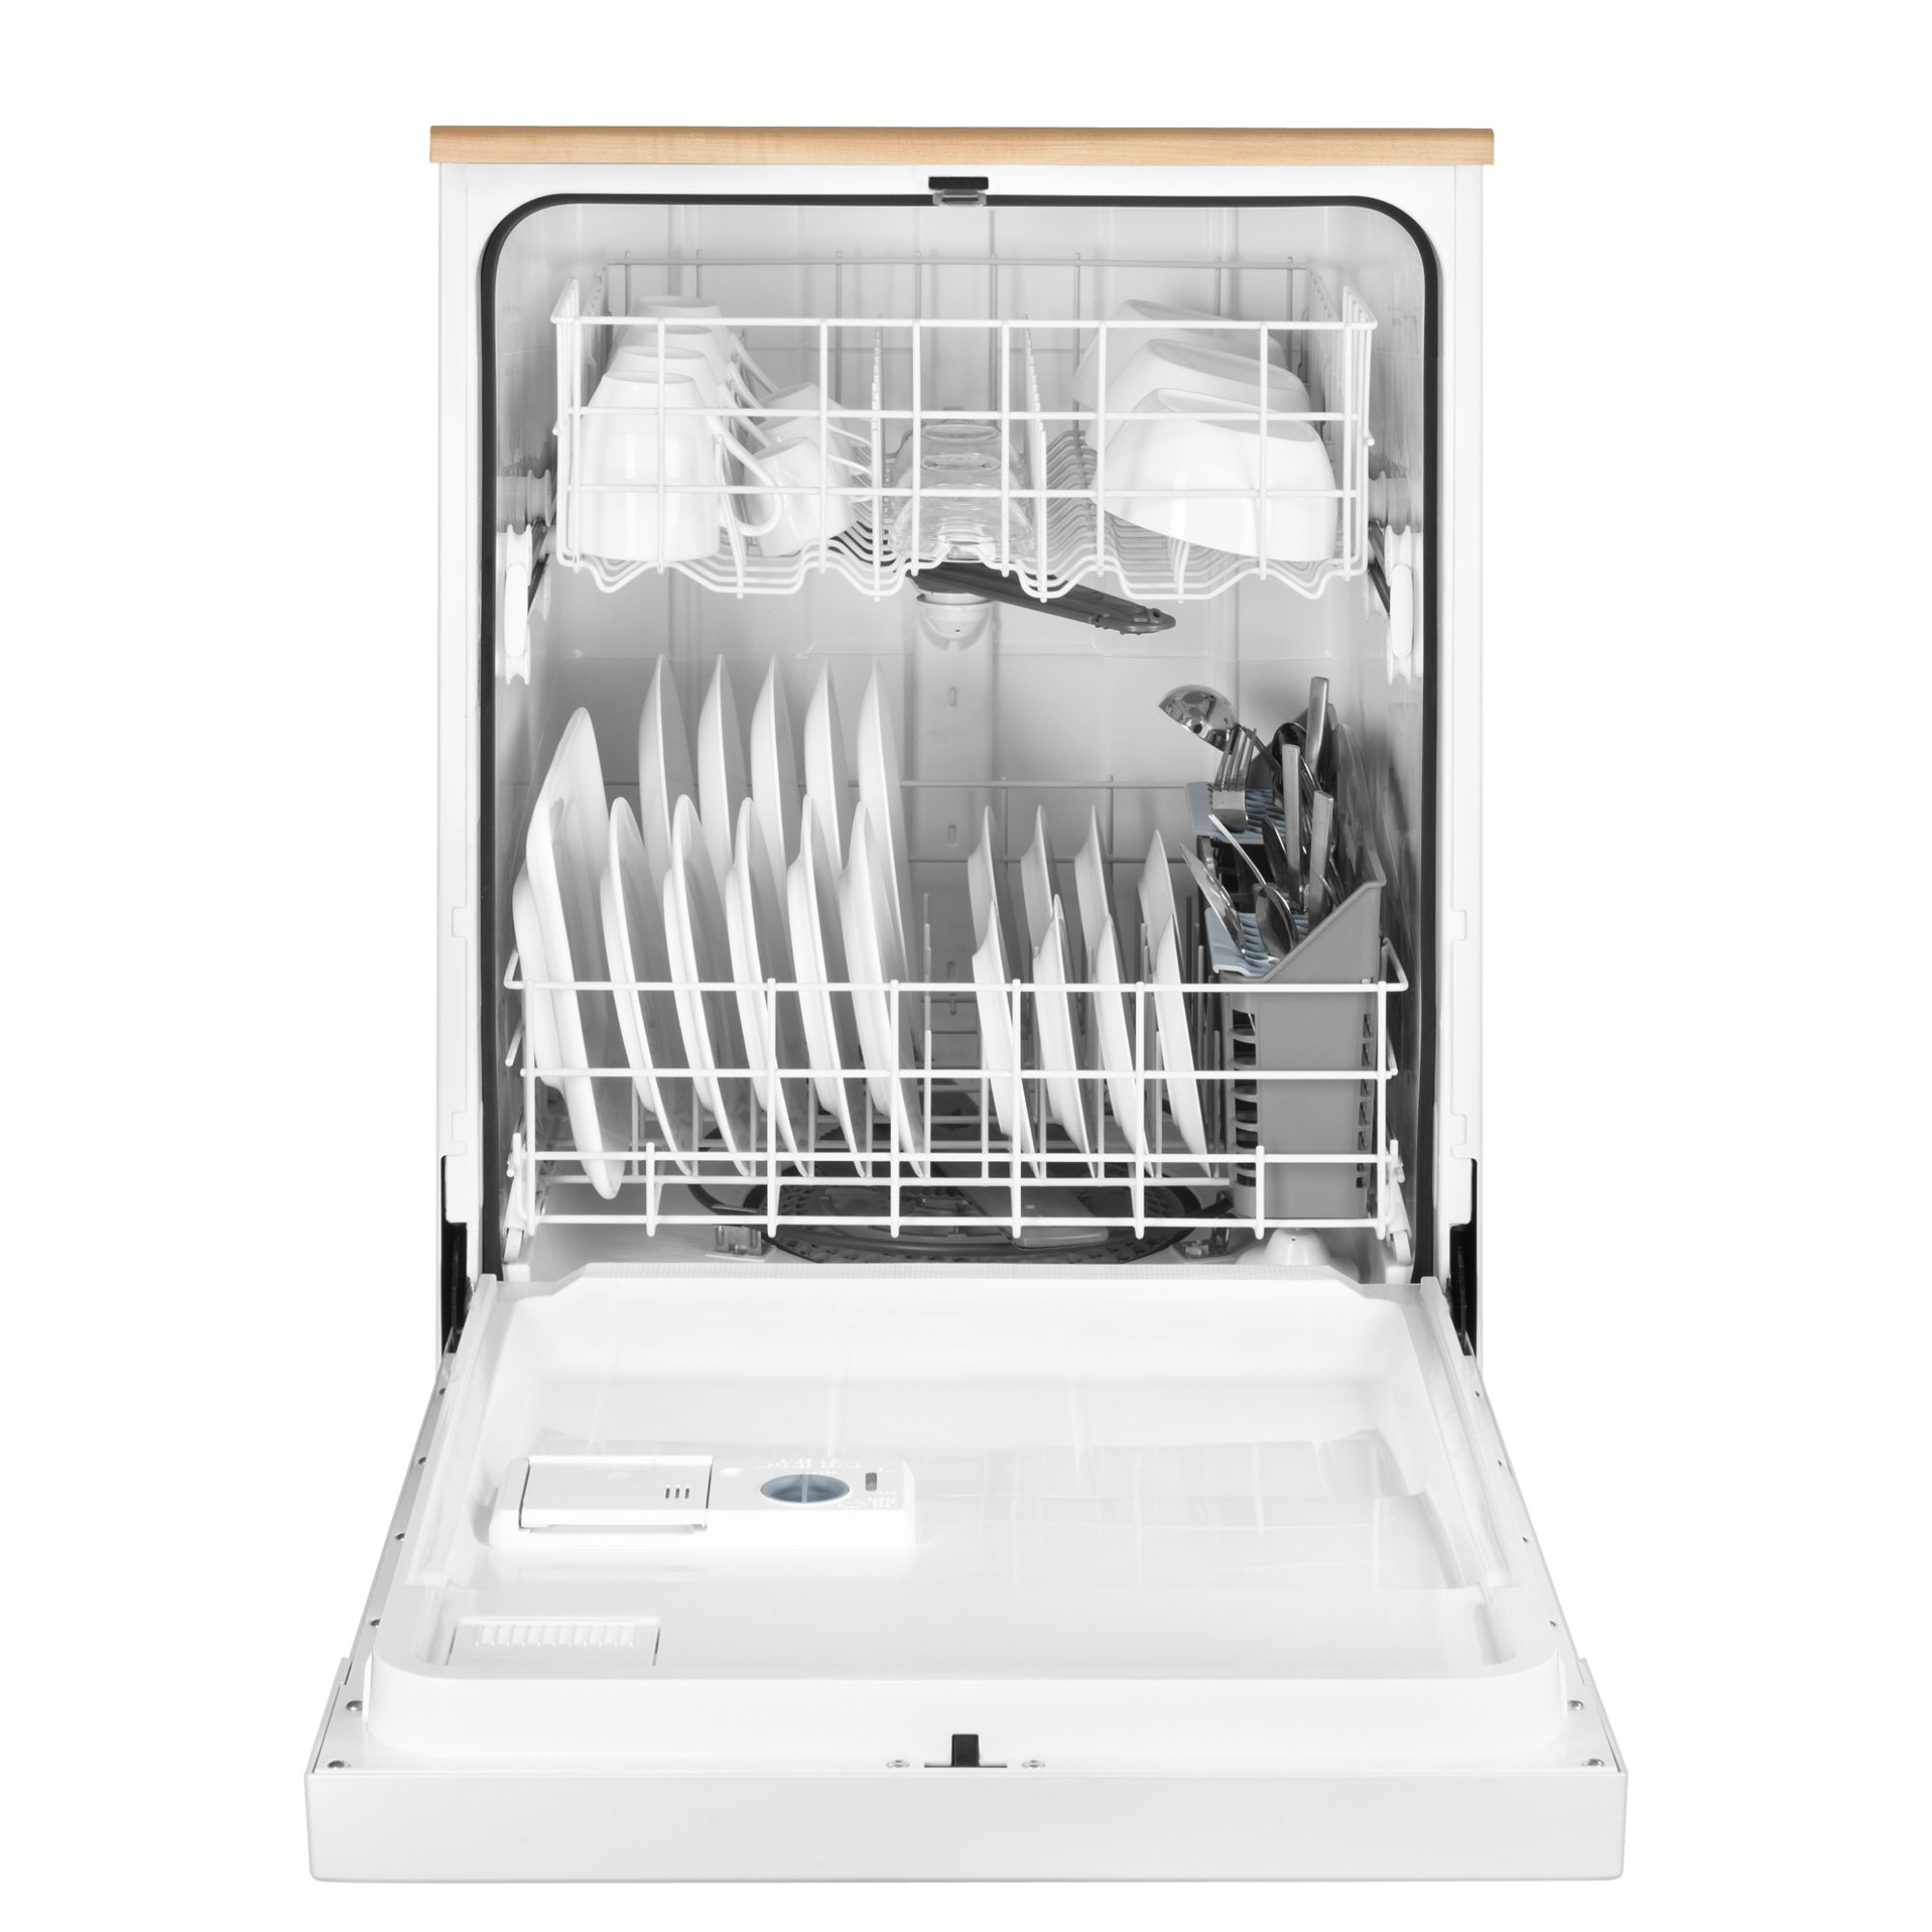 "Maytag 24"" Portable Jetclean® Plus Dishwasher w/ High-Temp Wash Option - White"